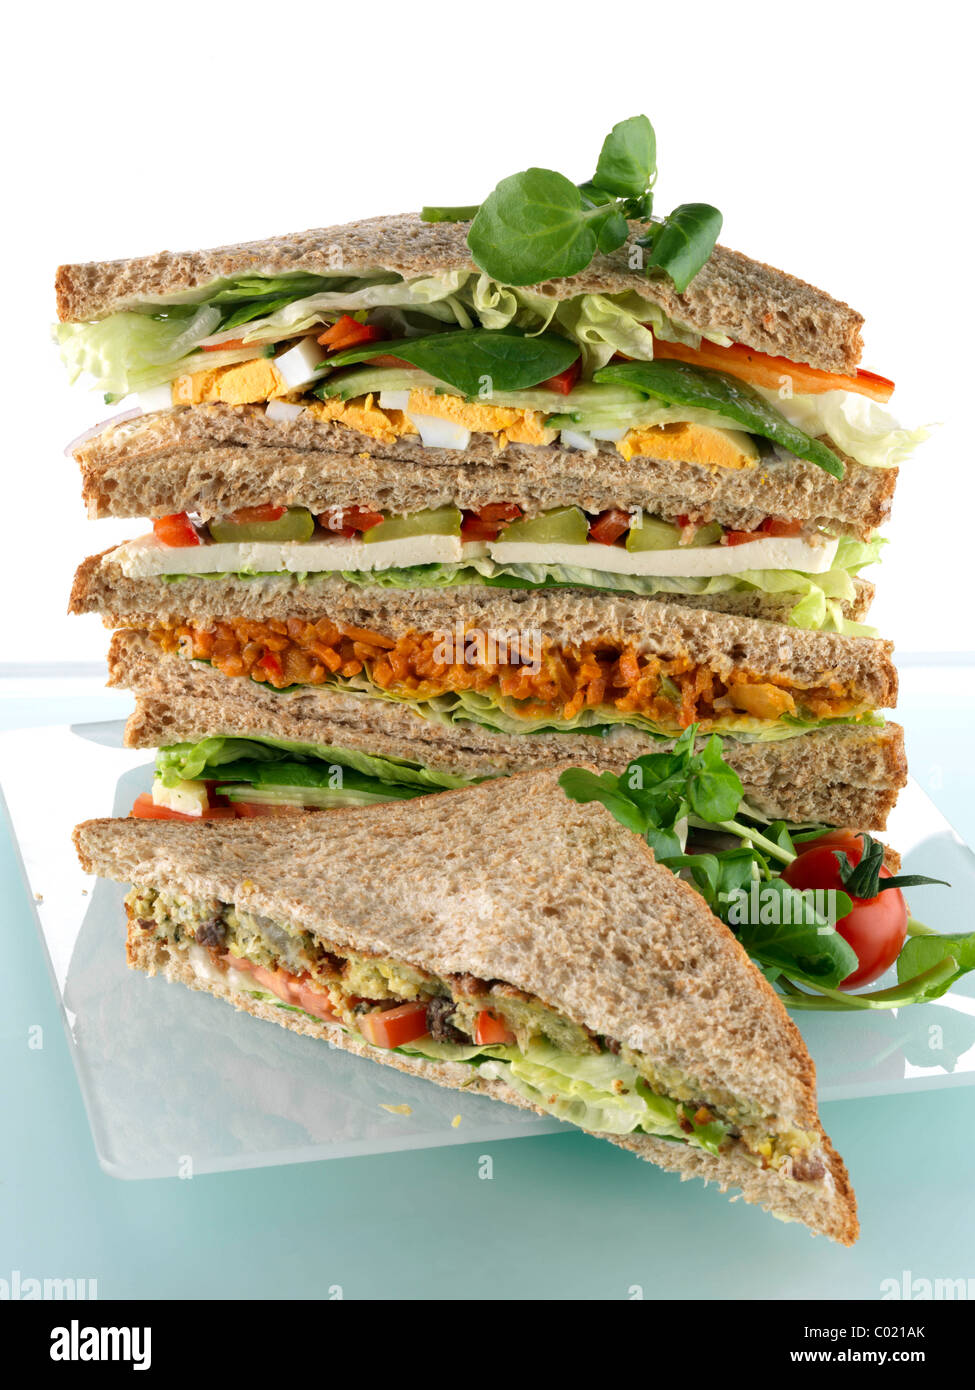 A pile of vegetarian sandwiches Stock Photo